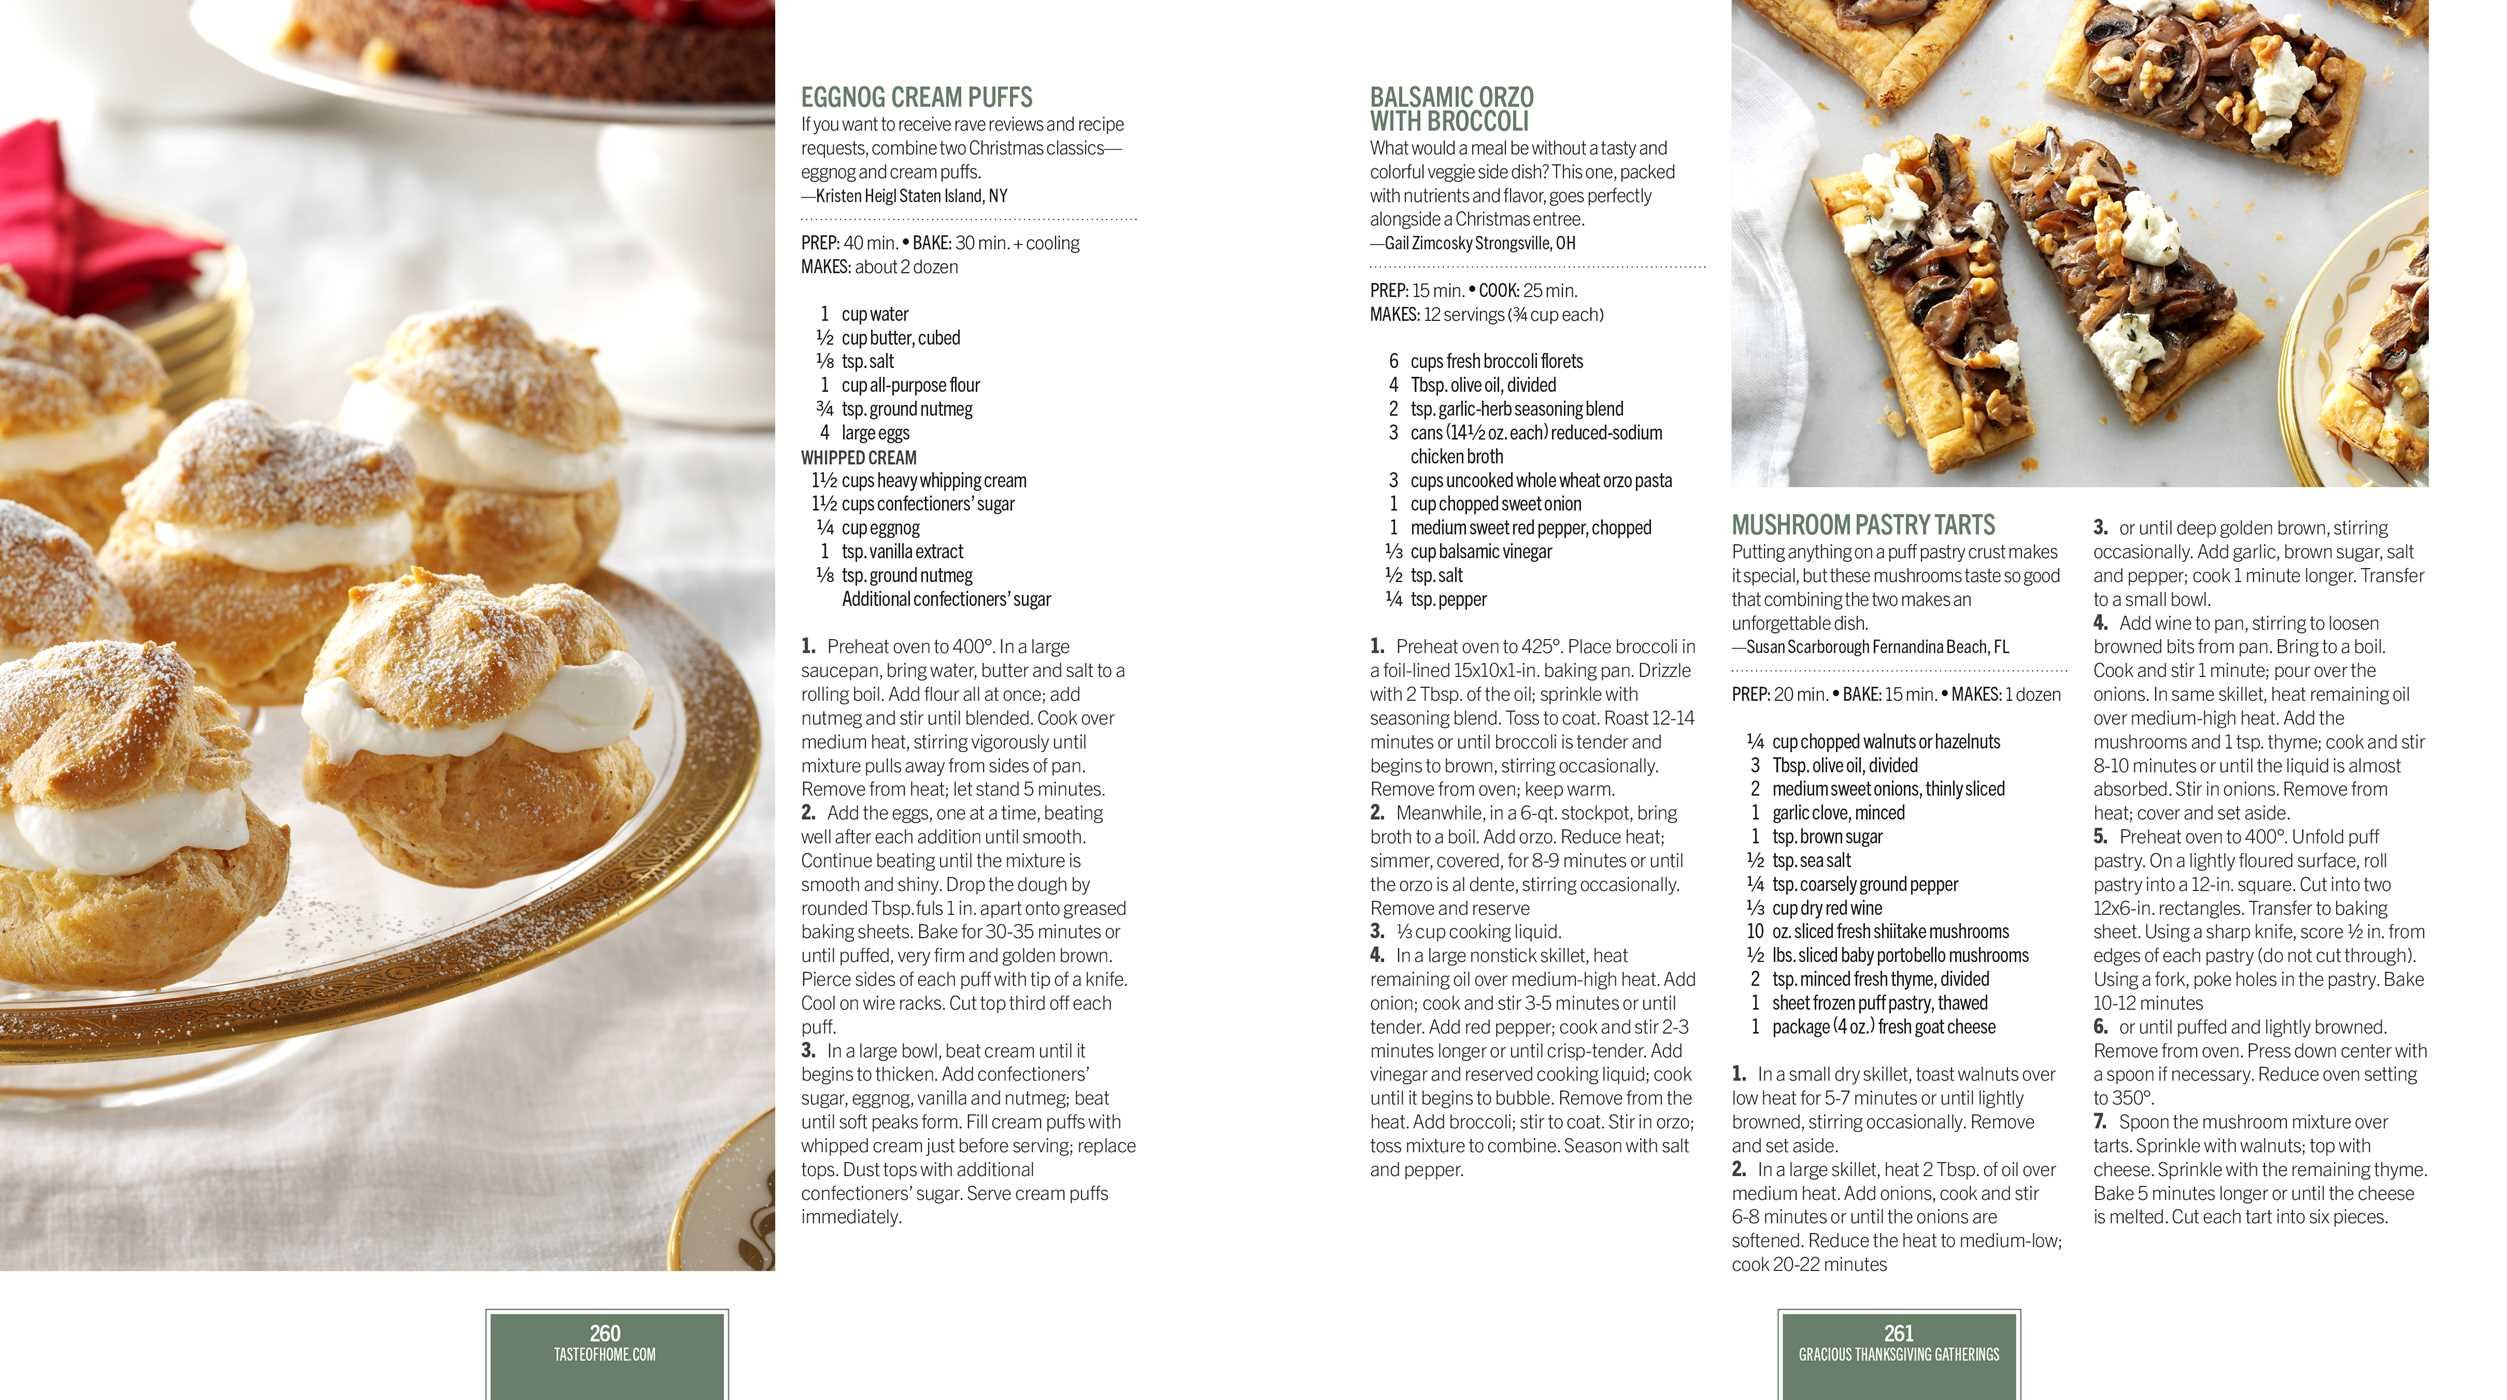 Taste Of Home Christmas 2021 Taste Of Home Christmas 2e 350 Recipes Crafts Ideas For Your Most Magical Holiday Yet Editors At Taste Of Home 9781617657641 Amazon Com Books